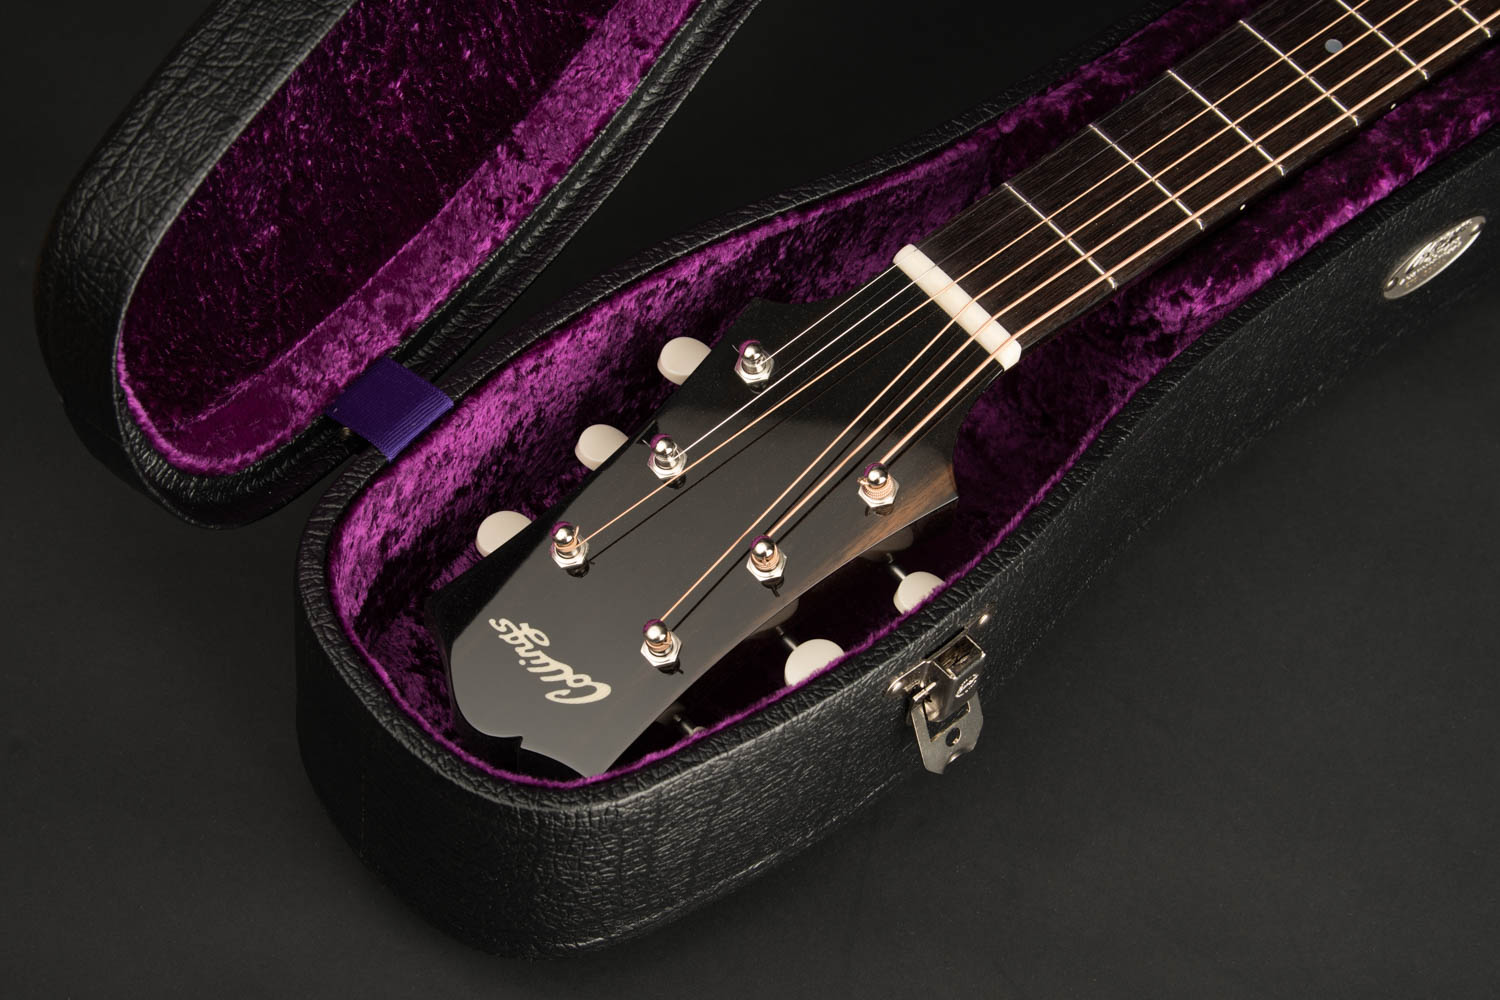 Collings Cases | Original Vintage-inspired Guitar and